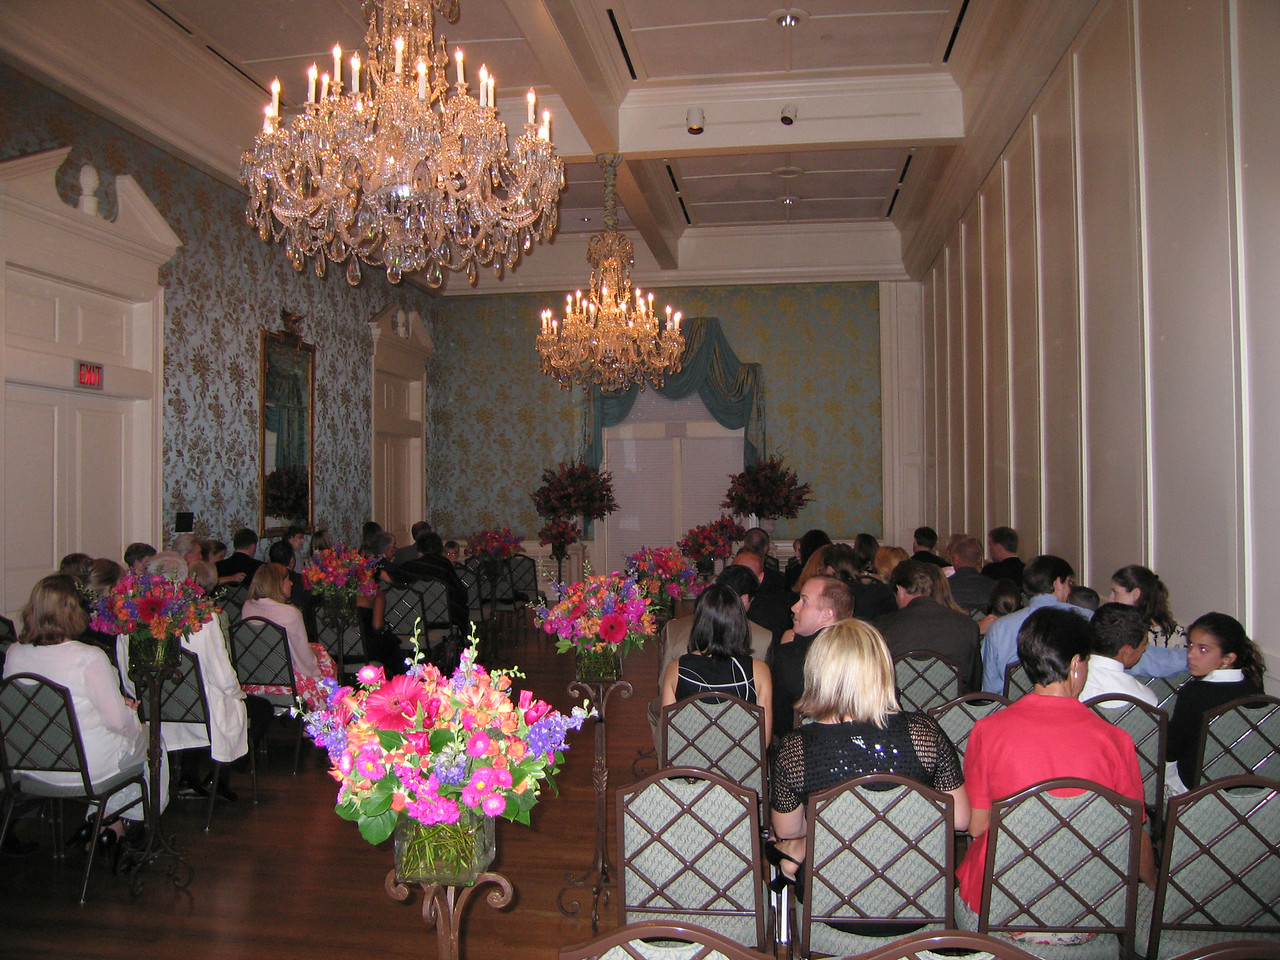 The room in which the ceremony took place